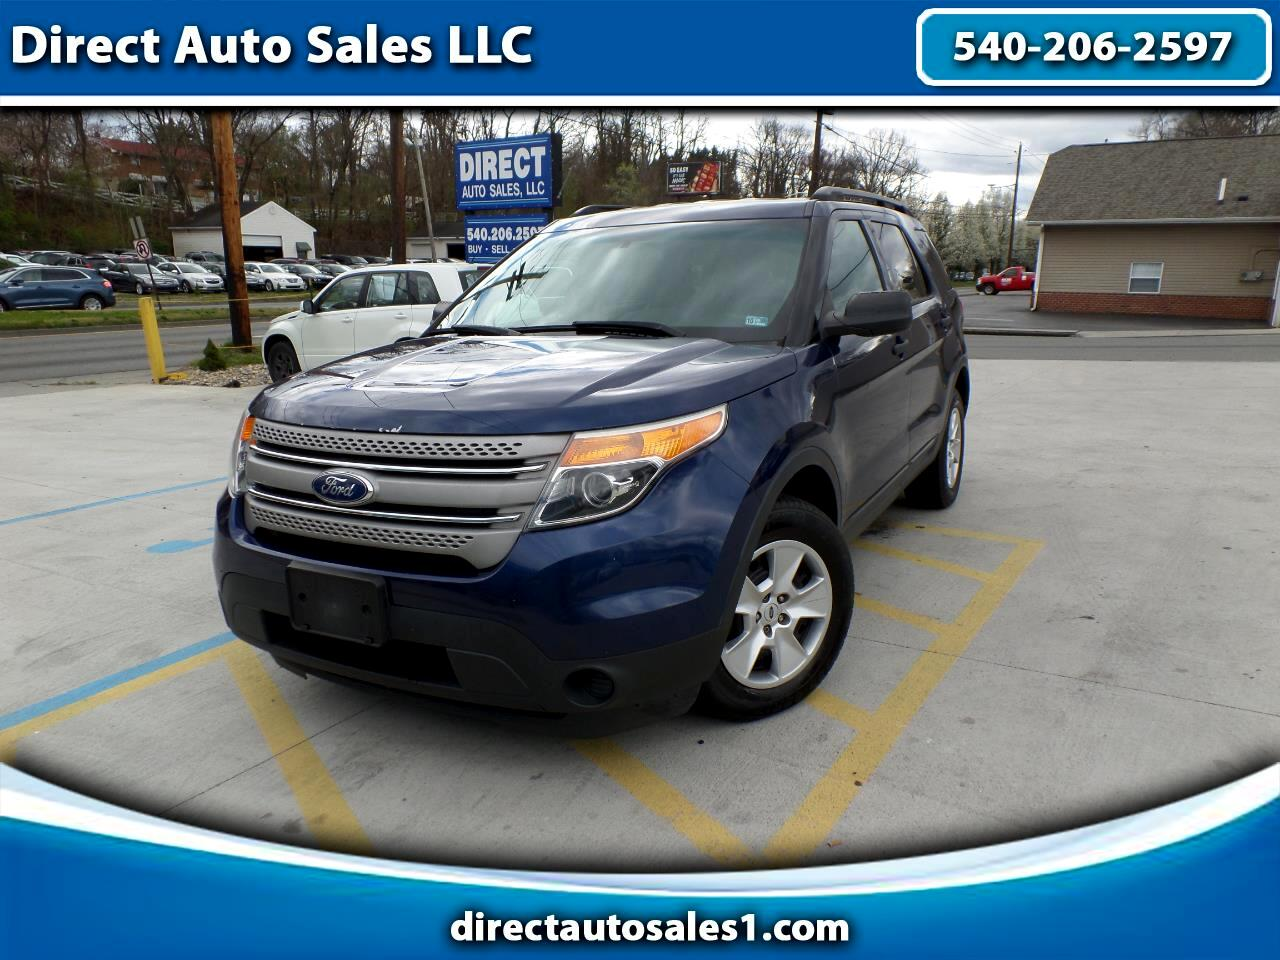 Ford Explorer Base FWD 2012